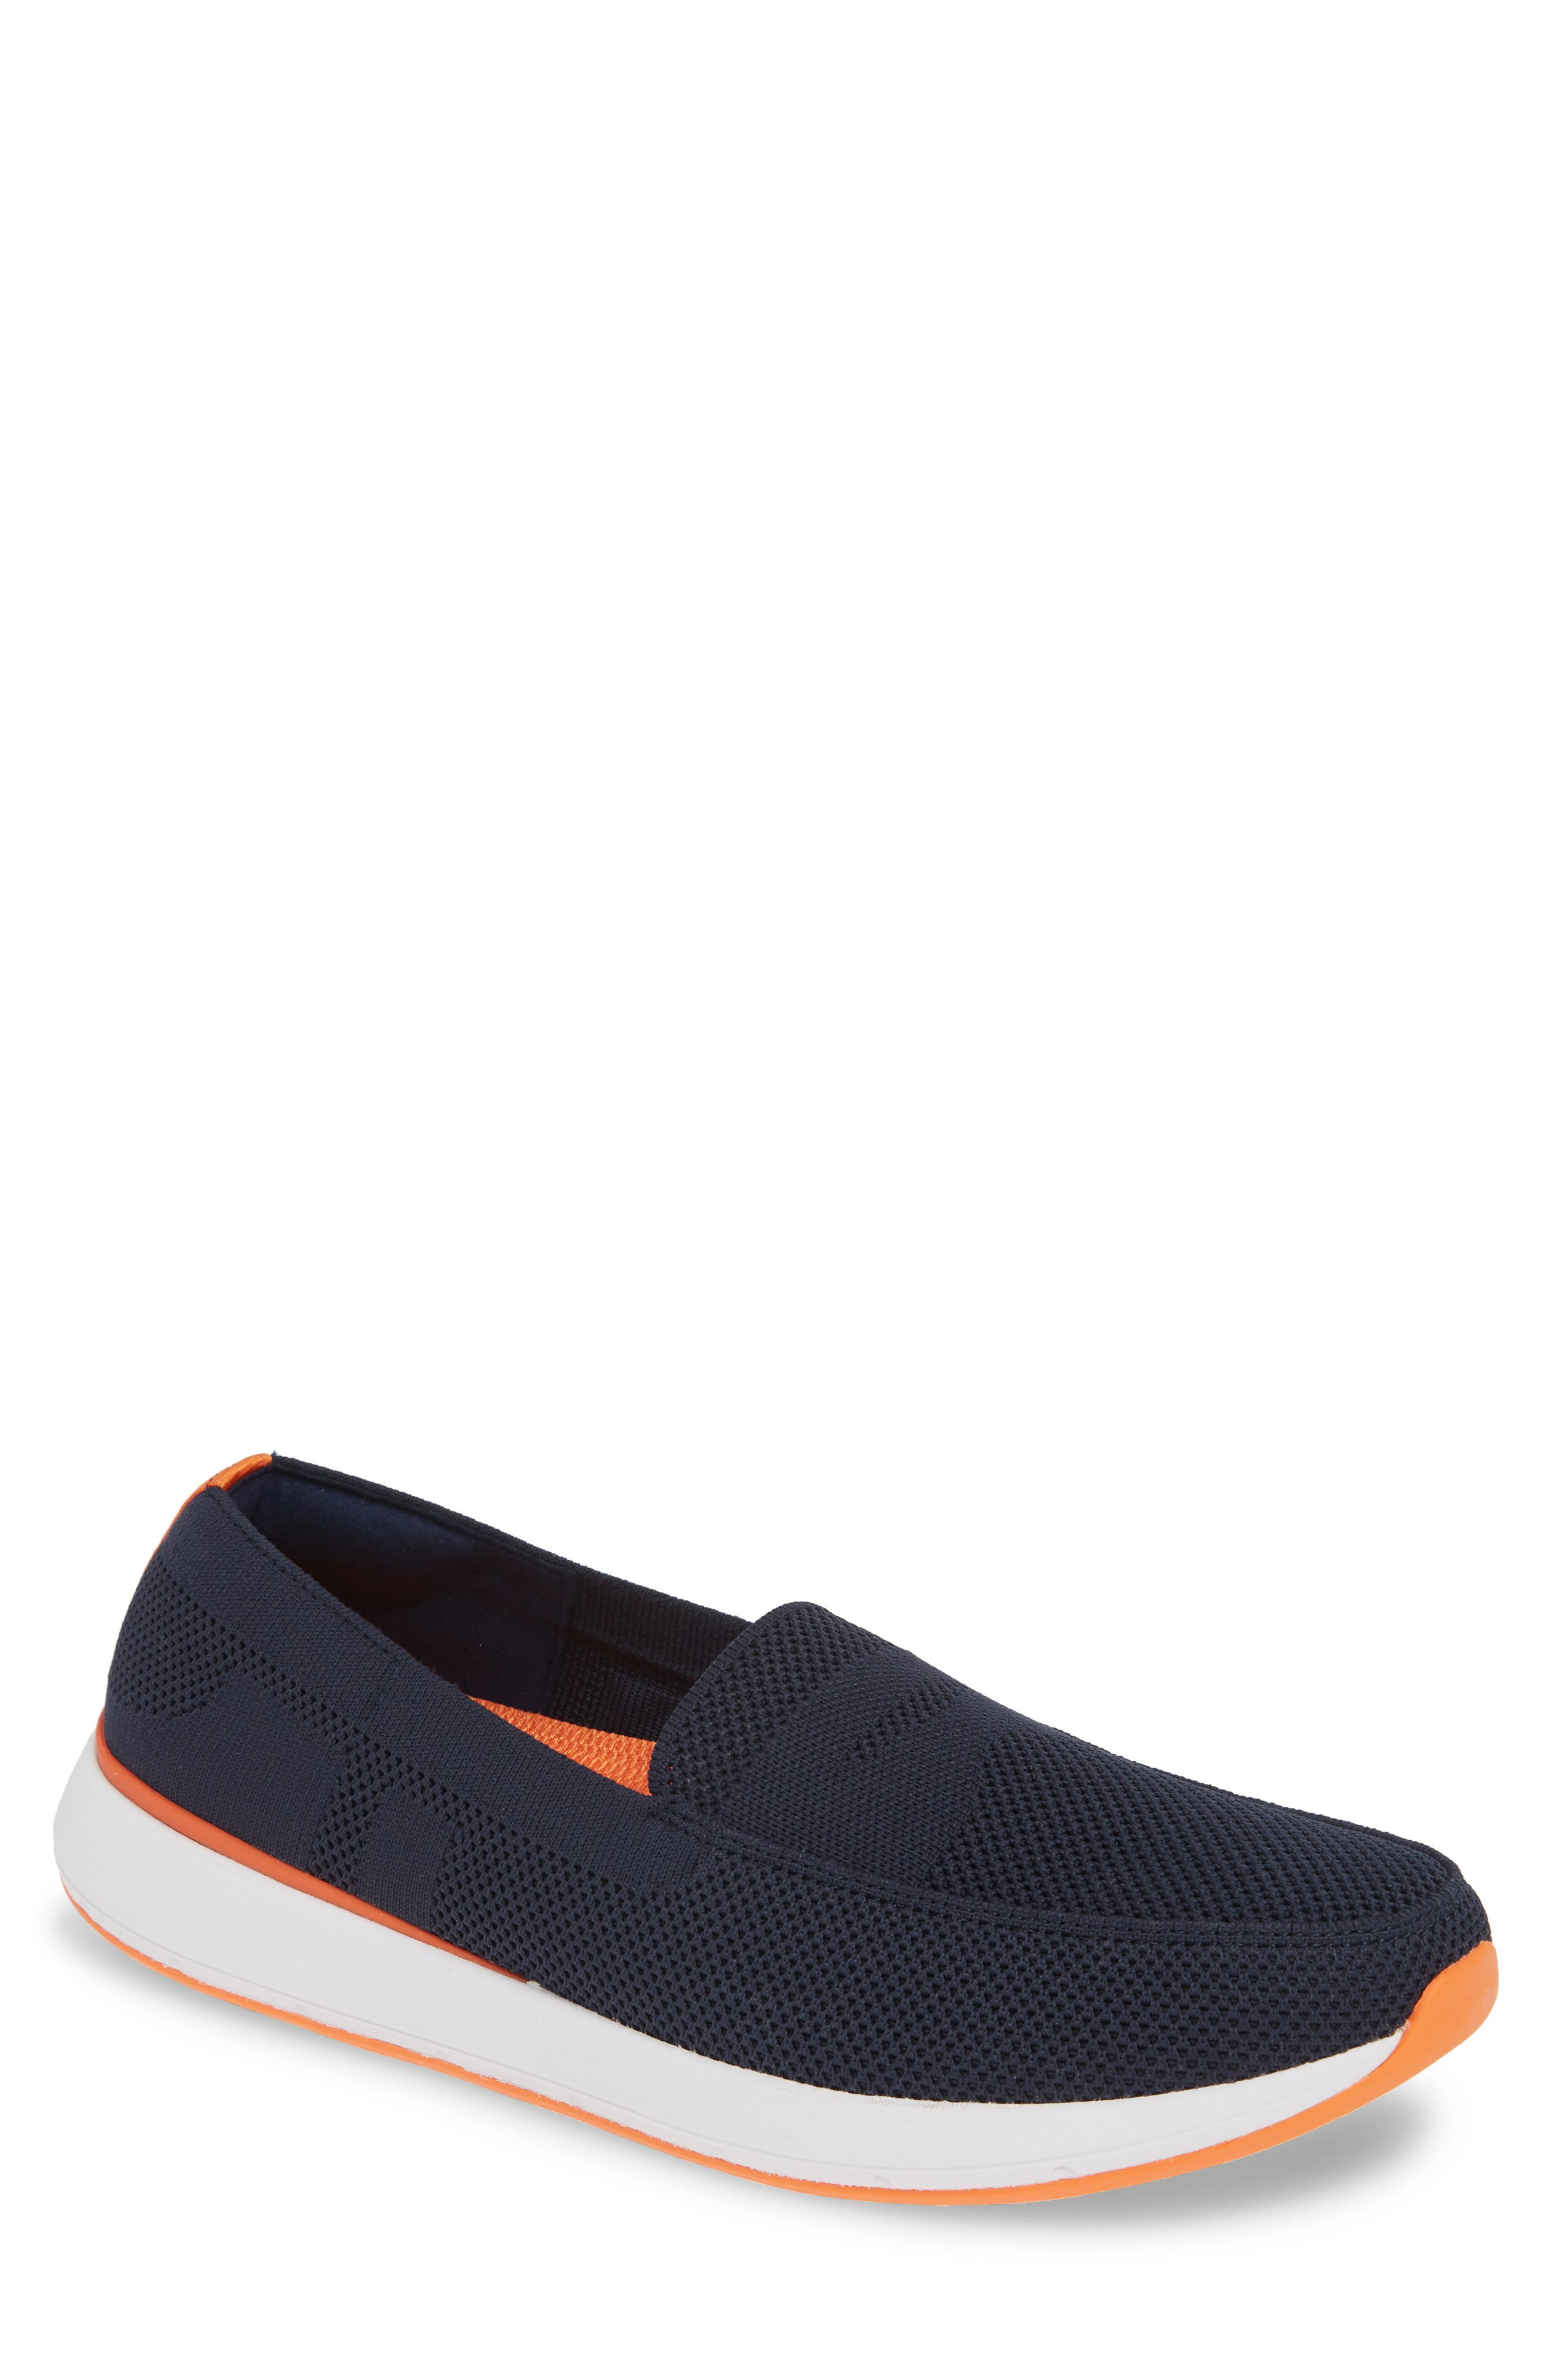 1ffcb6925806 Swims Shoes